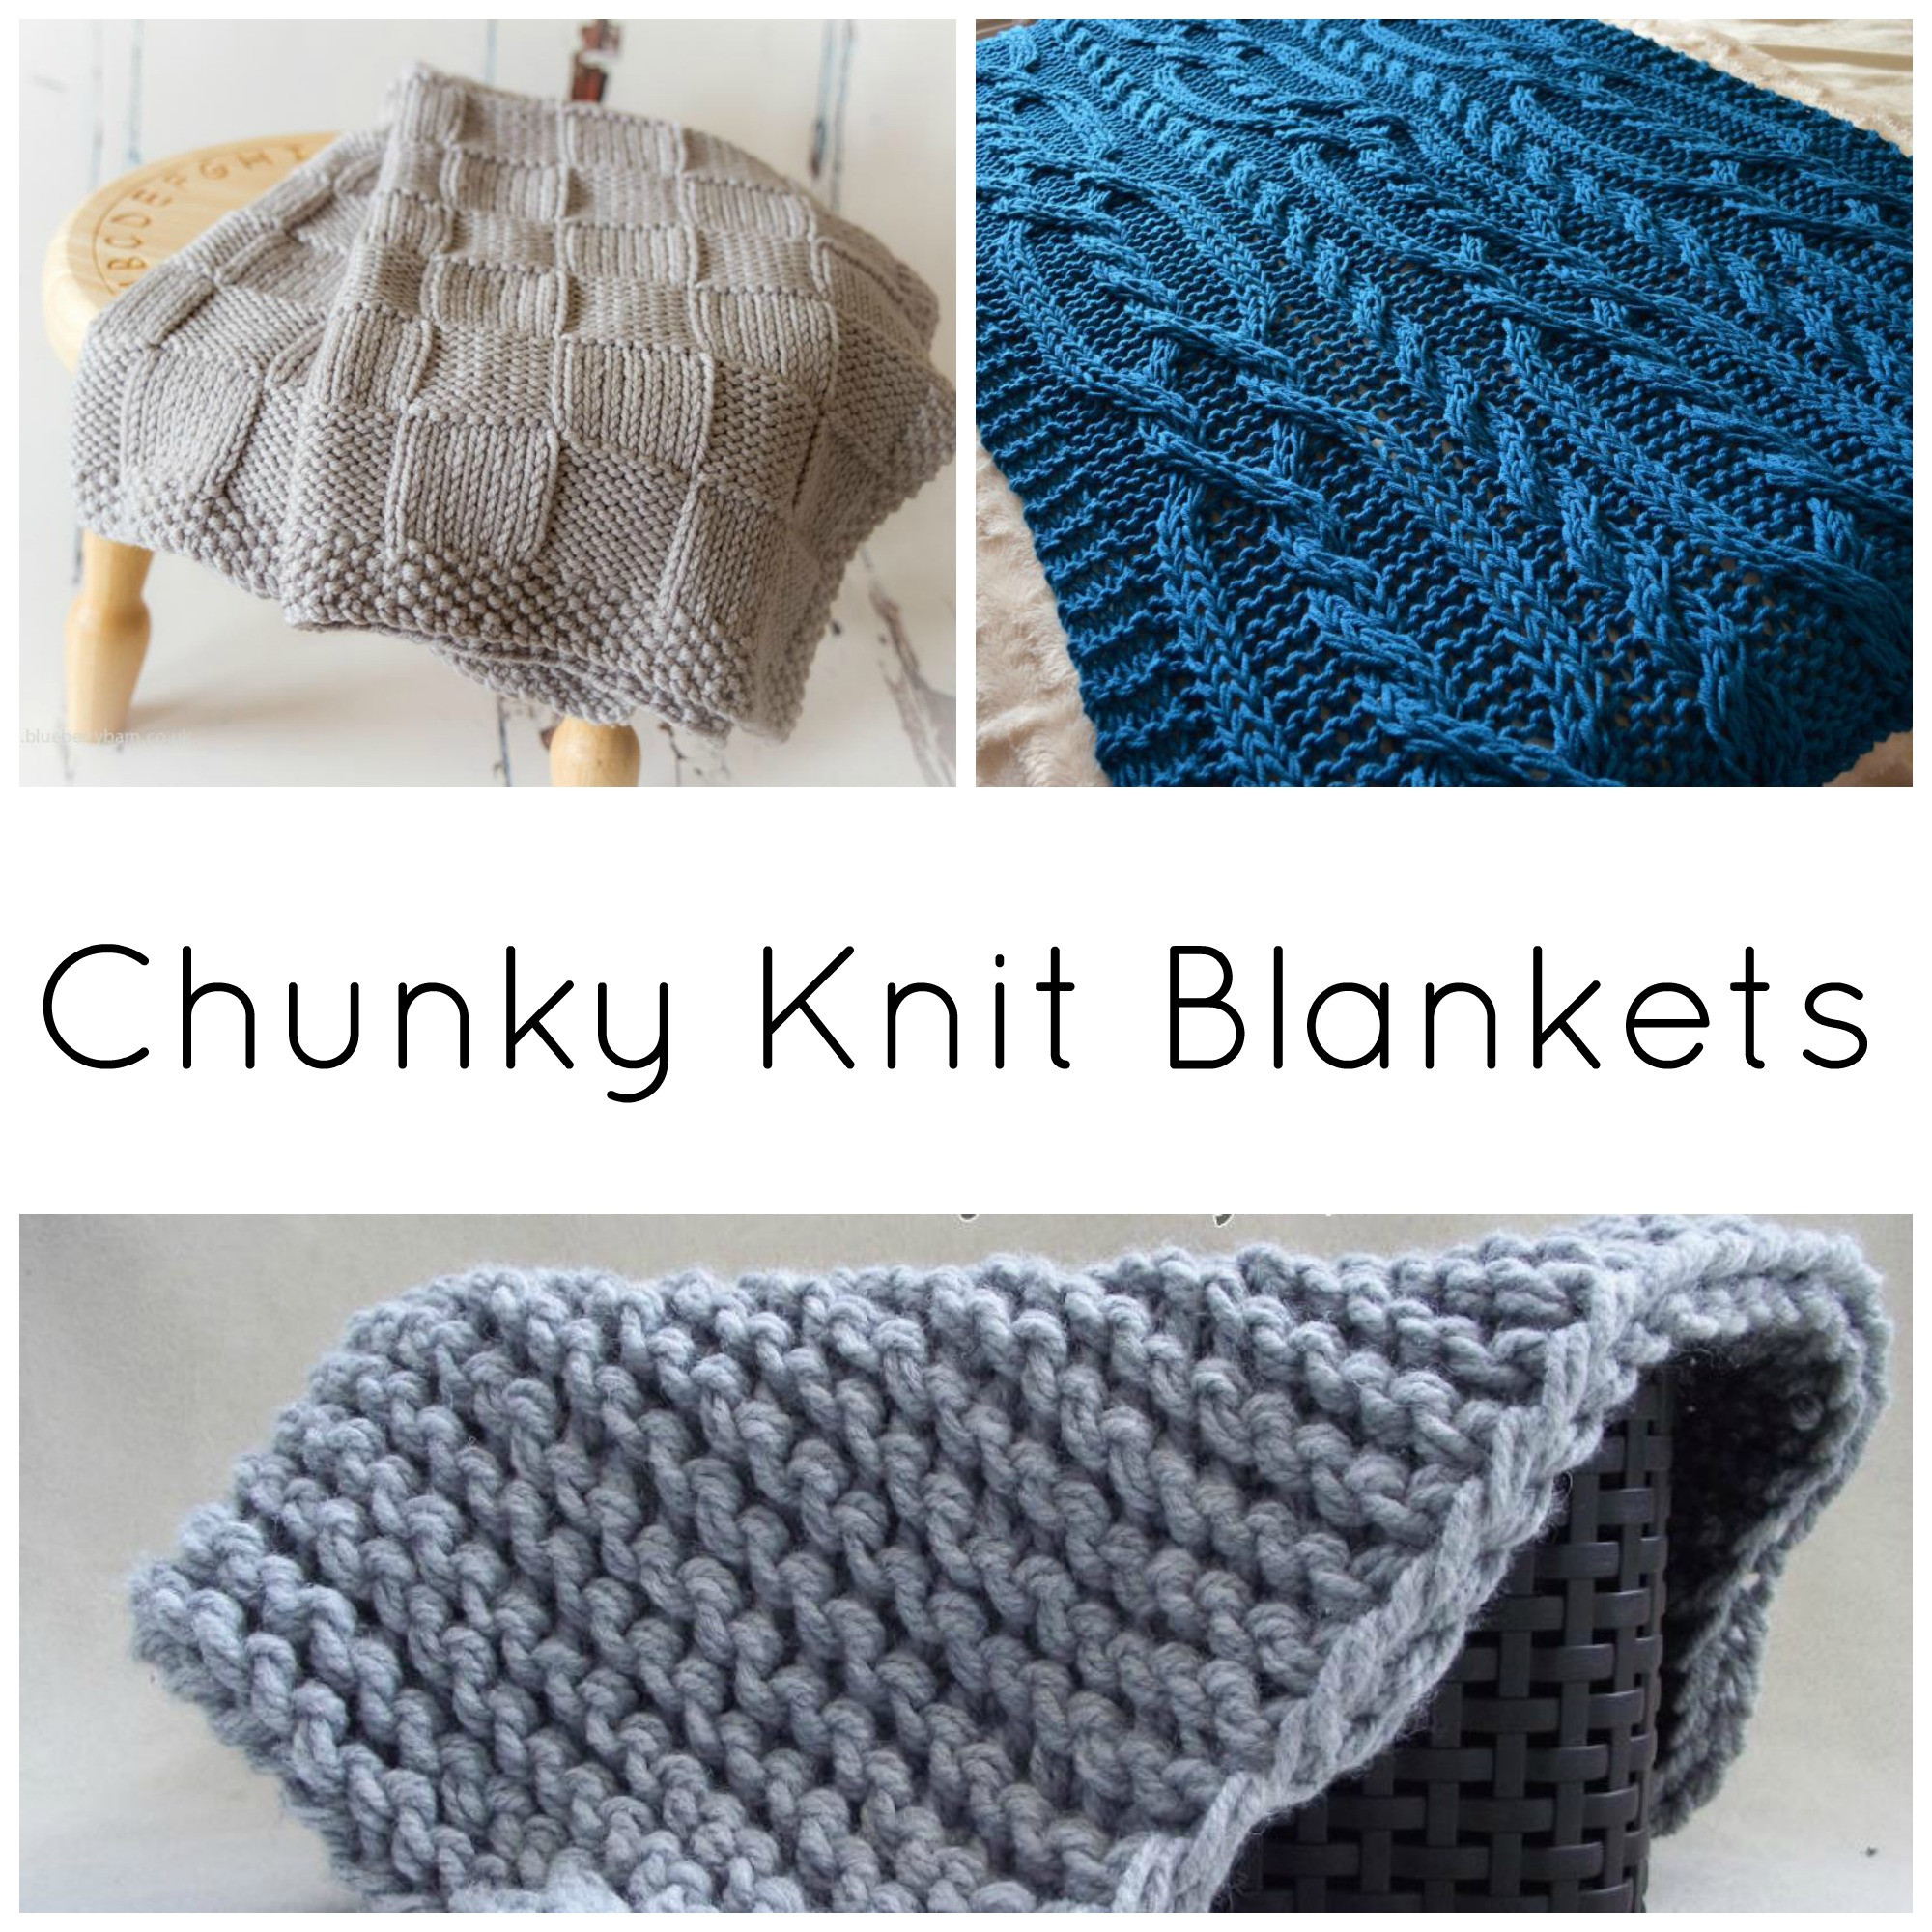 Knit Throw Blanket Inspirational 10 Quick & Cozy Chunky Knit Blanket Patterns On Craftsy Of New 48 Pictures Knit Throw Blanket